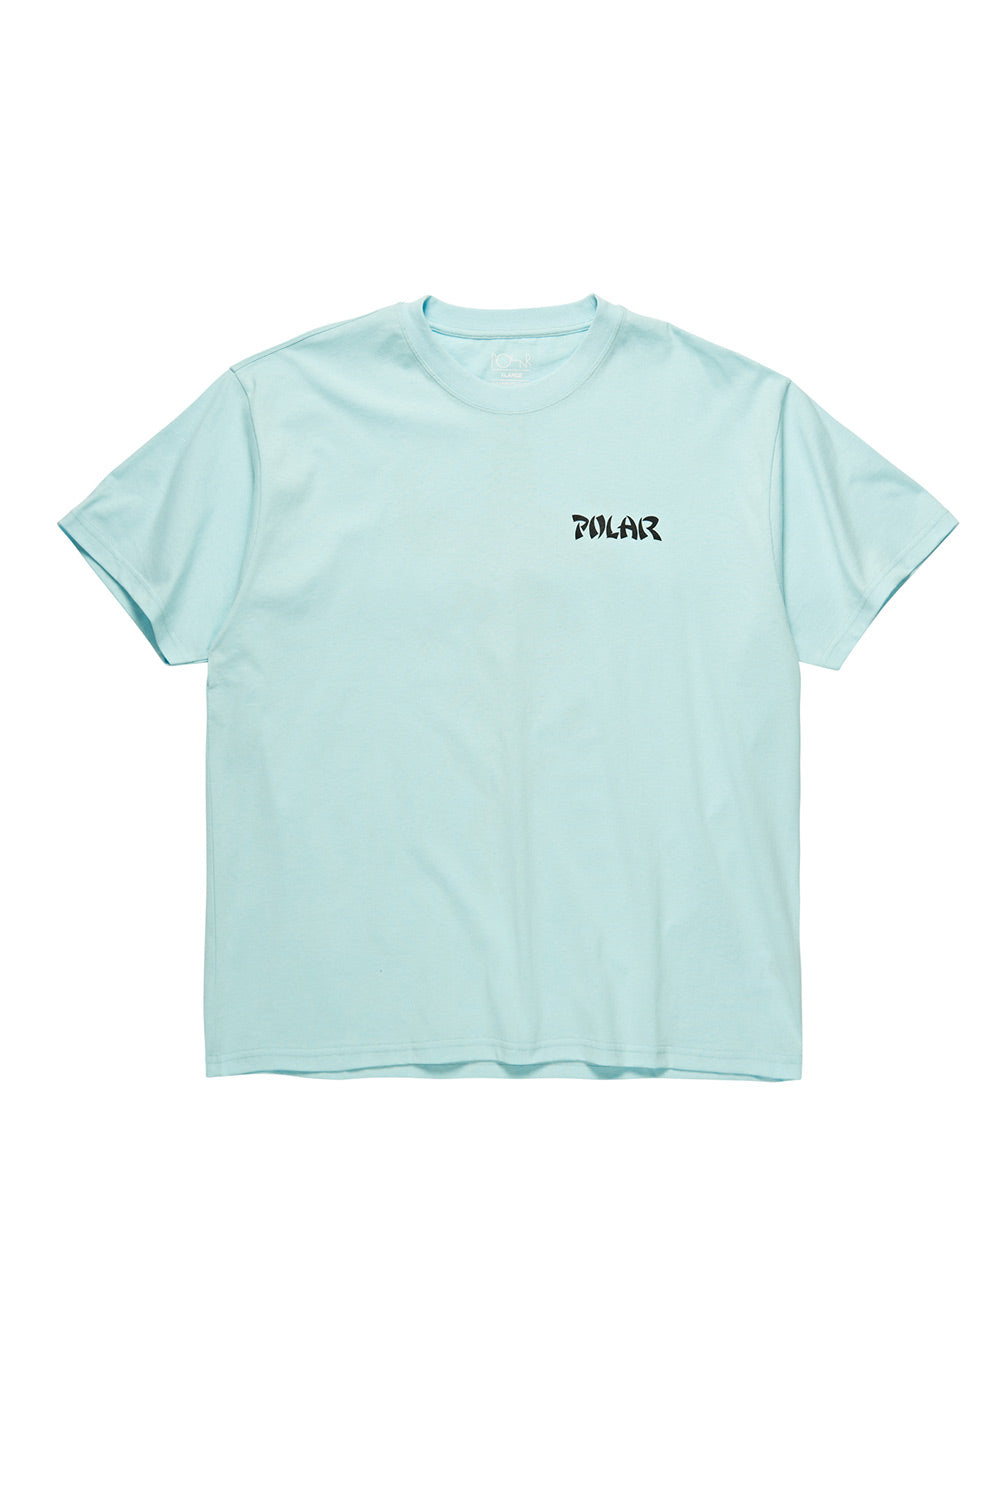 Polar Skate Co Dragon Tee - Aquamarine